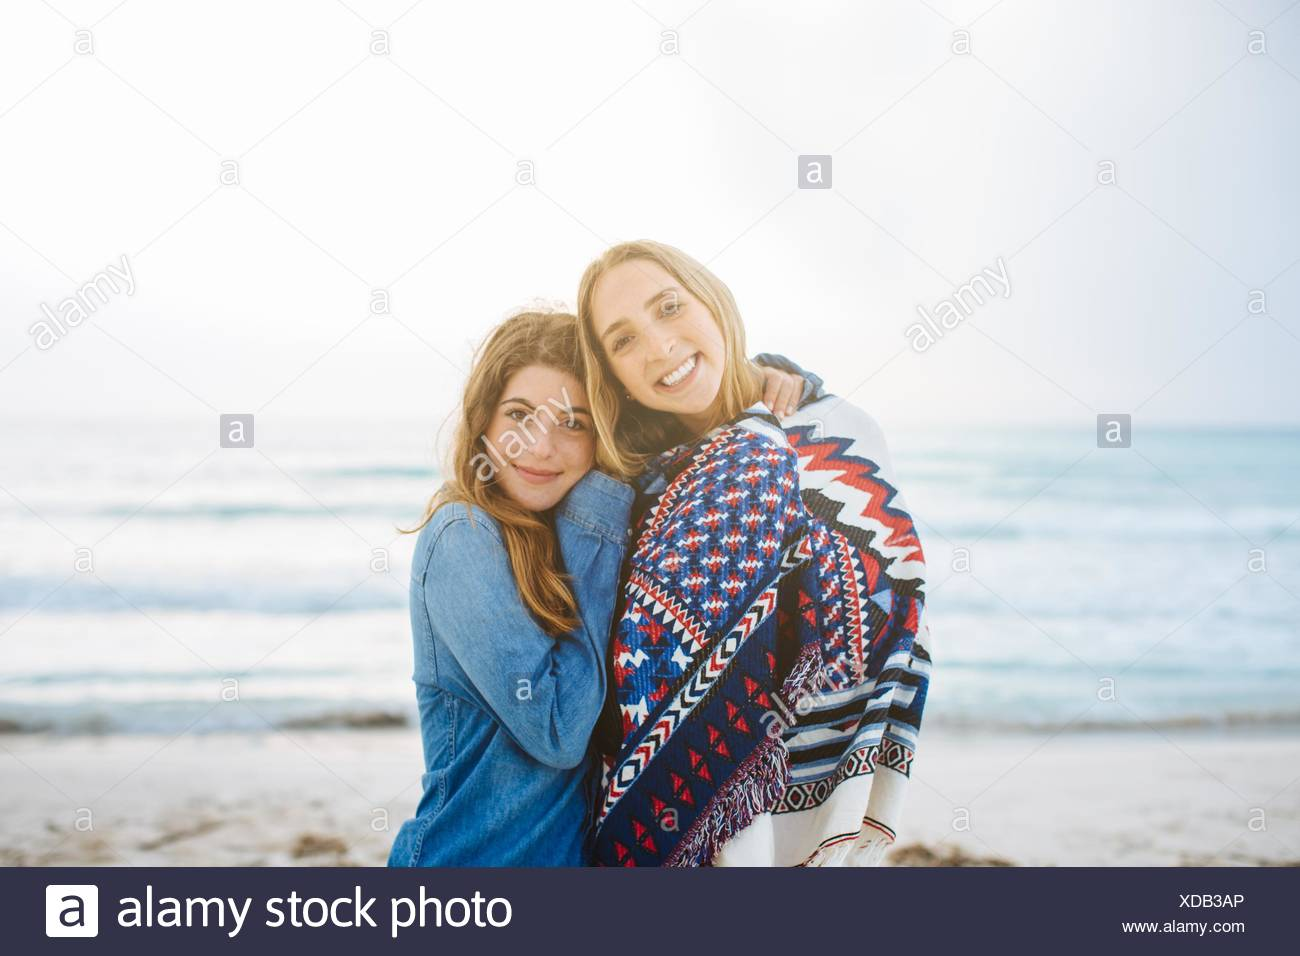 Portrait de deux jeunes femmes friends hugging on beach Photo Stock